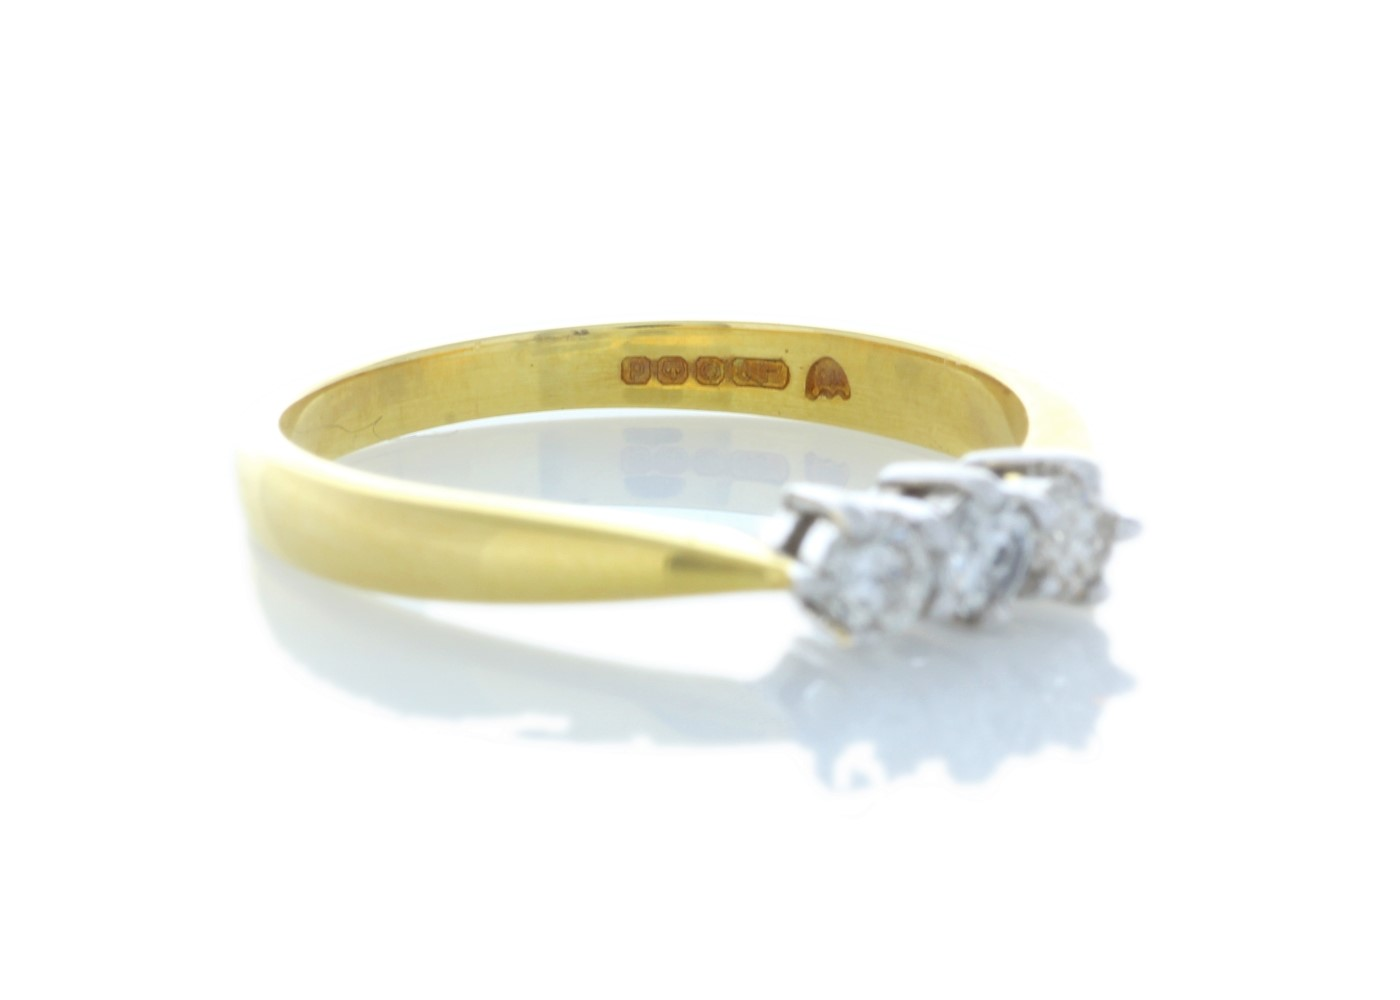 Lot 41 - 9ct Yellow Gold Three Stone Claw Set Diamond Ring 0.25 Carats